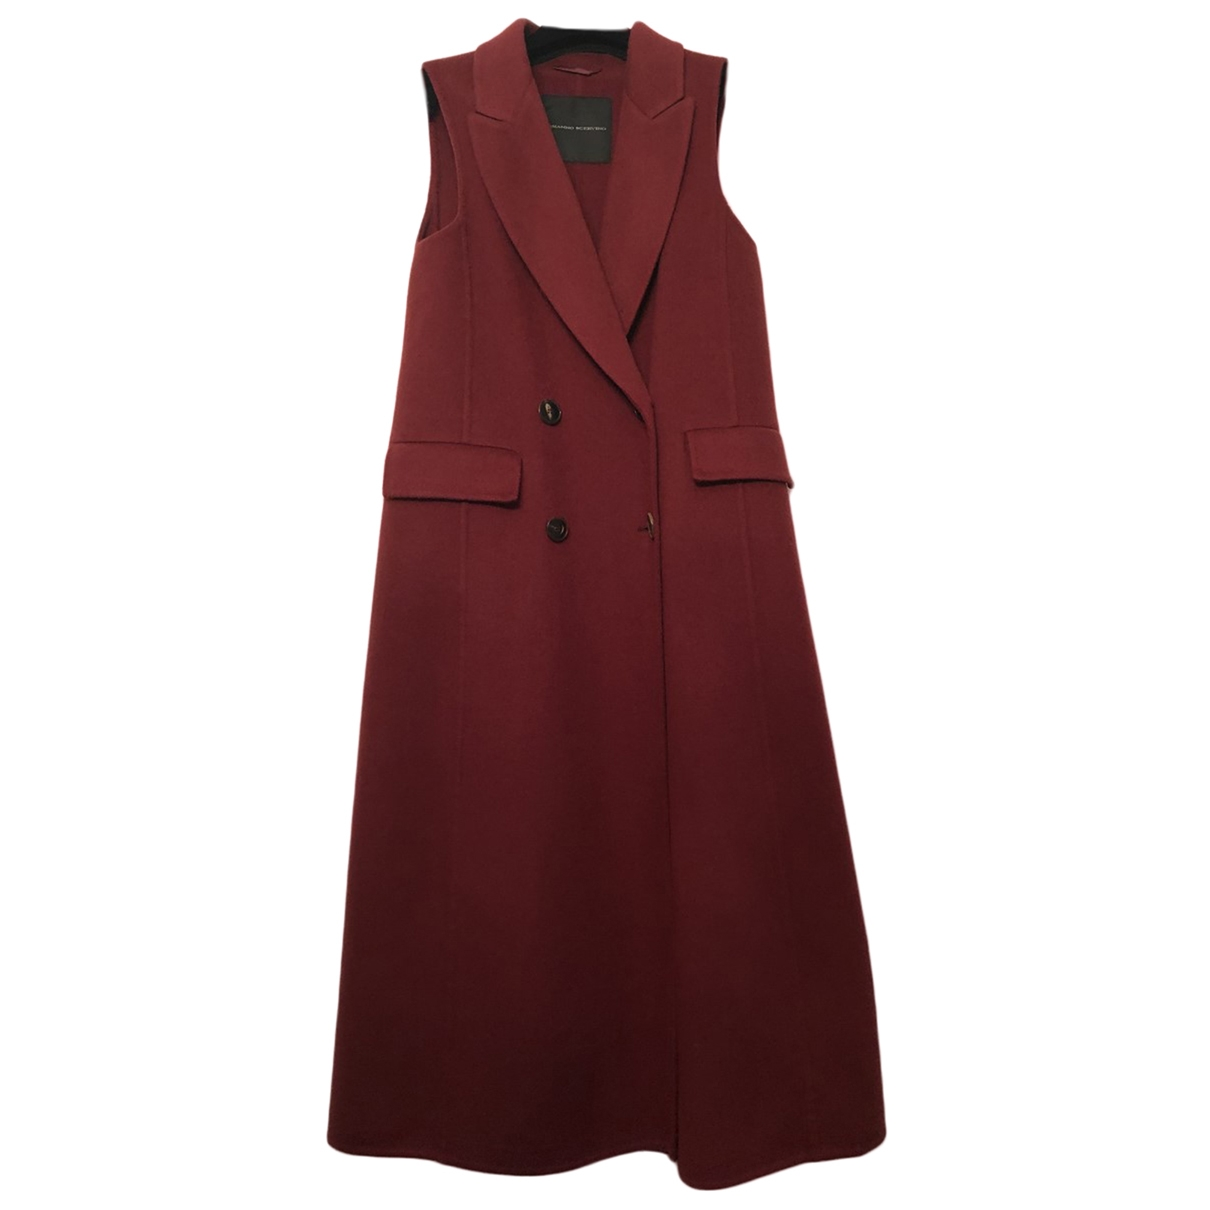 Ermanno Scervino \N Burgundy Wool coat for Women 38 IT